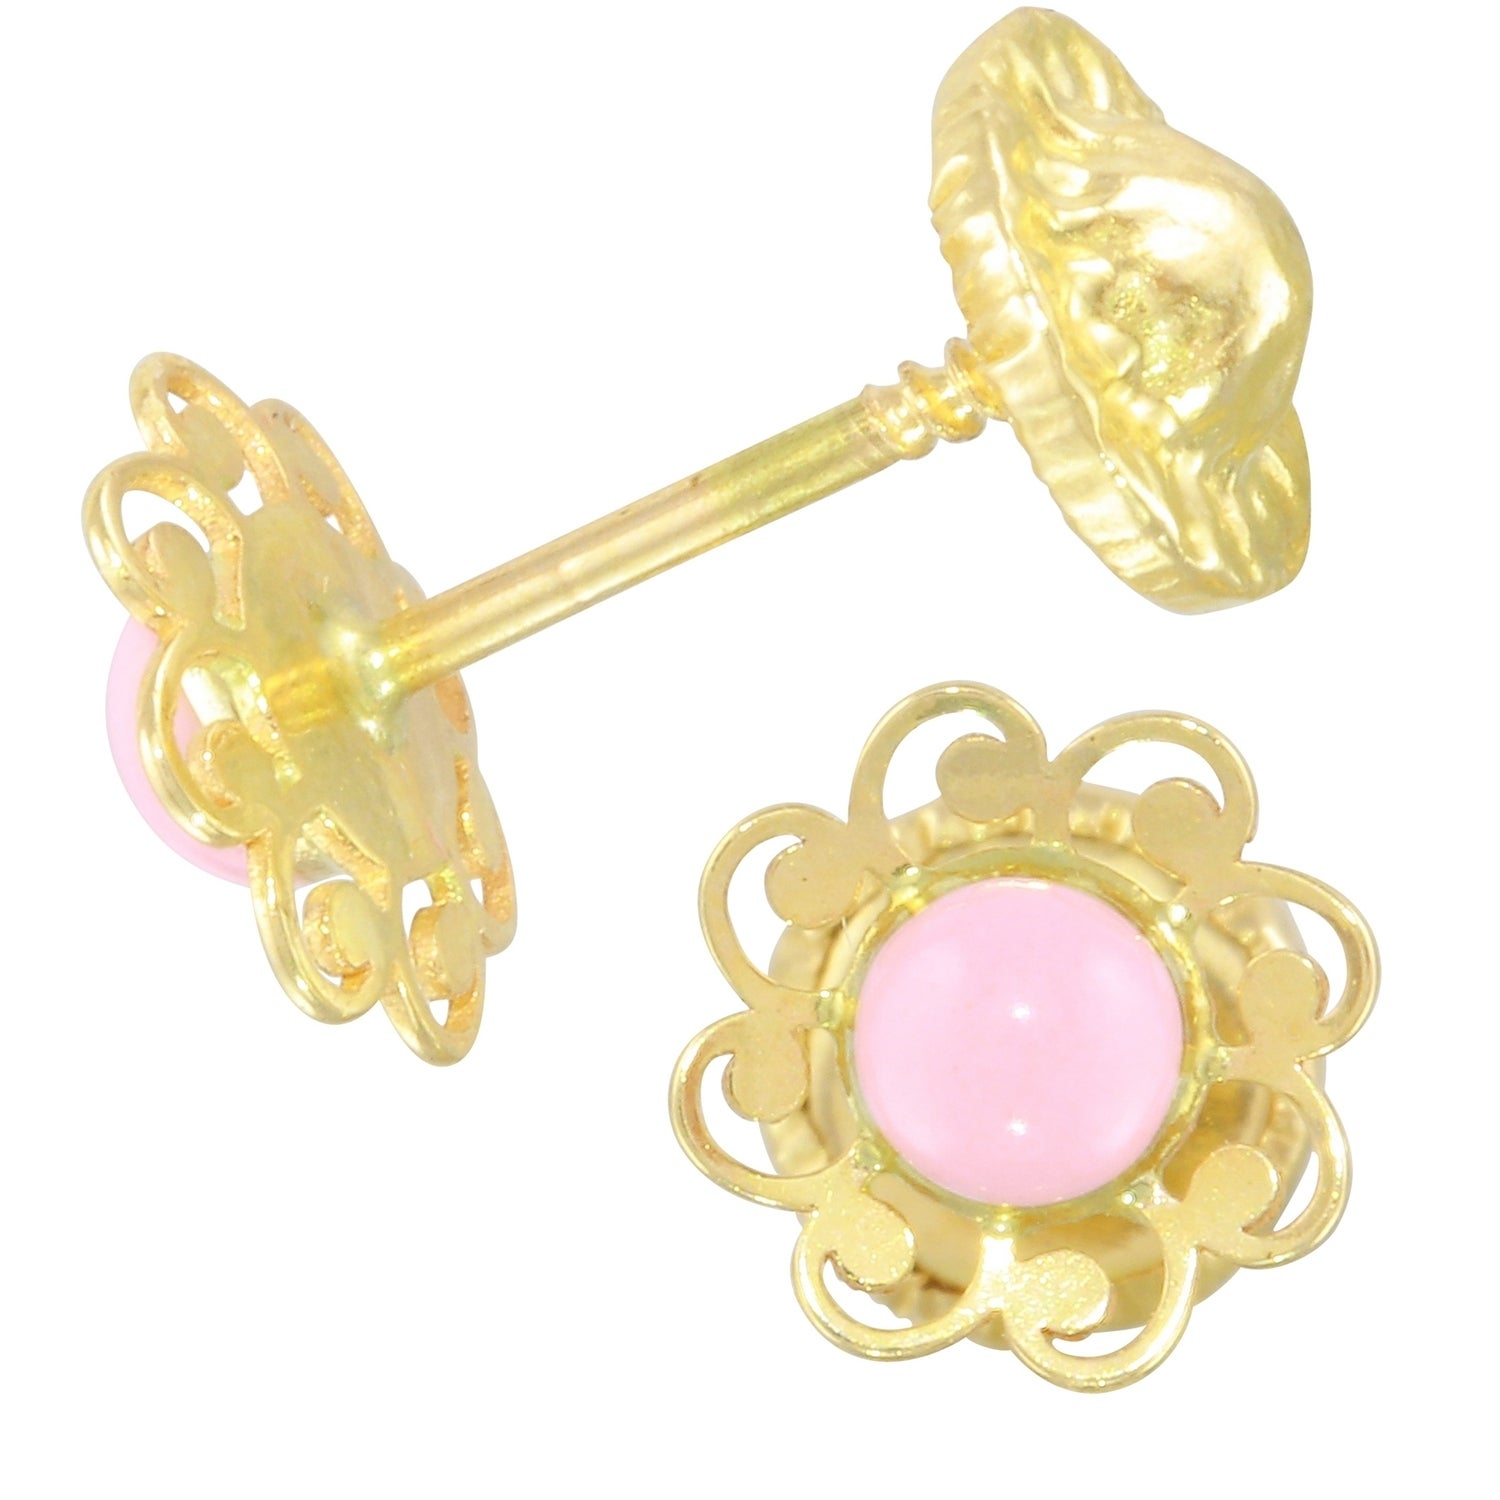 Shop 14k Yellow Gold Flower Earrings Free Shipping Today